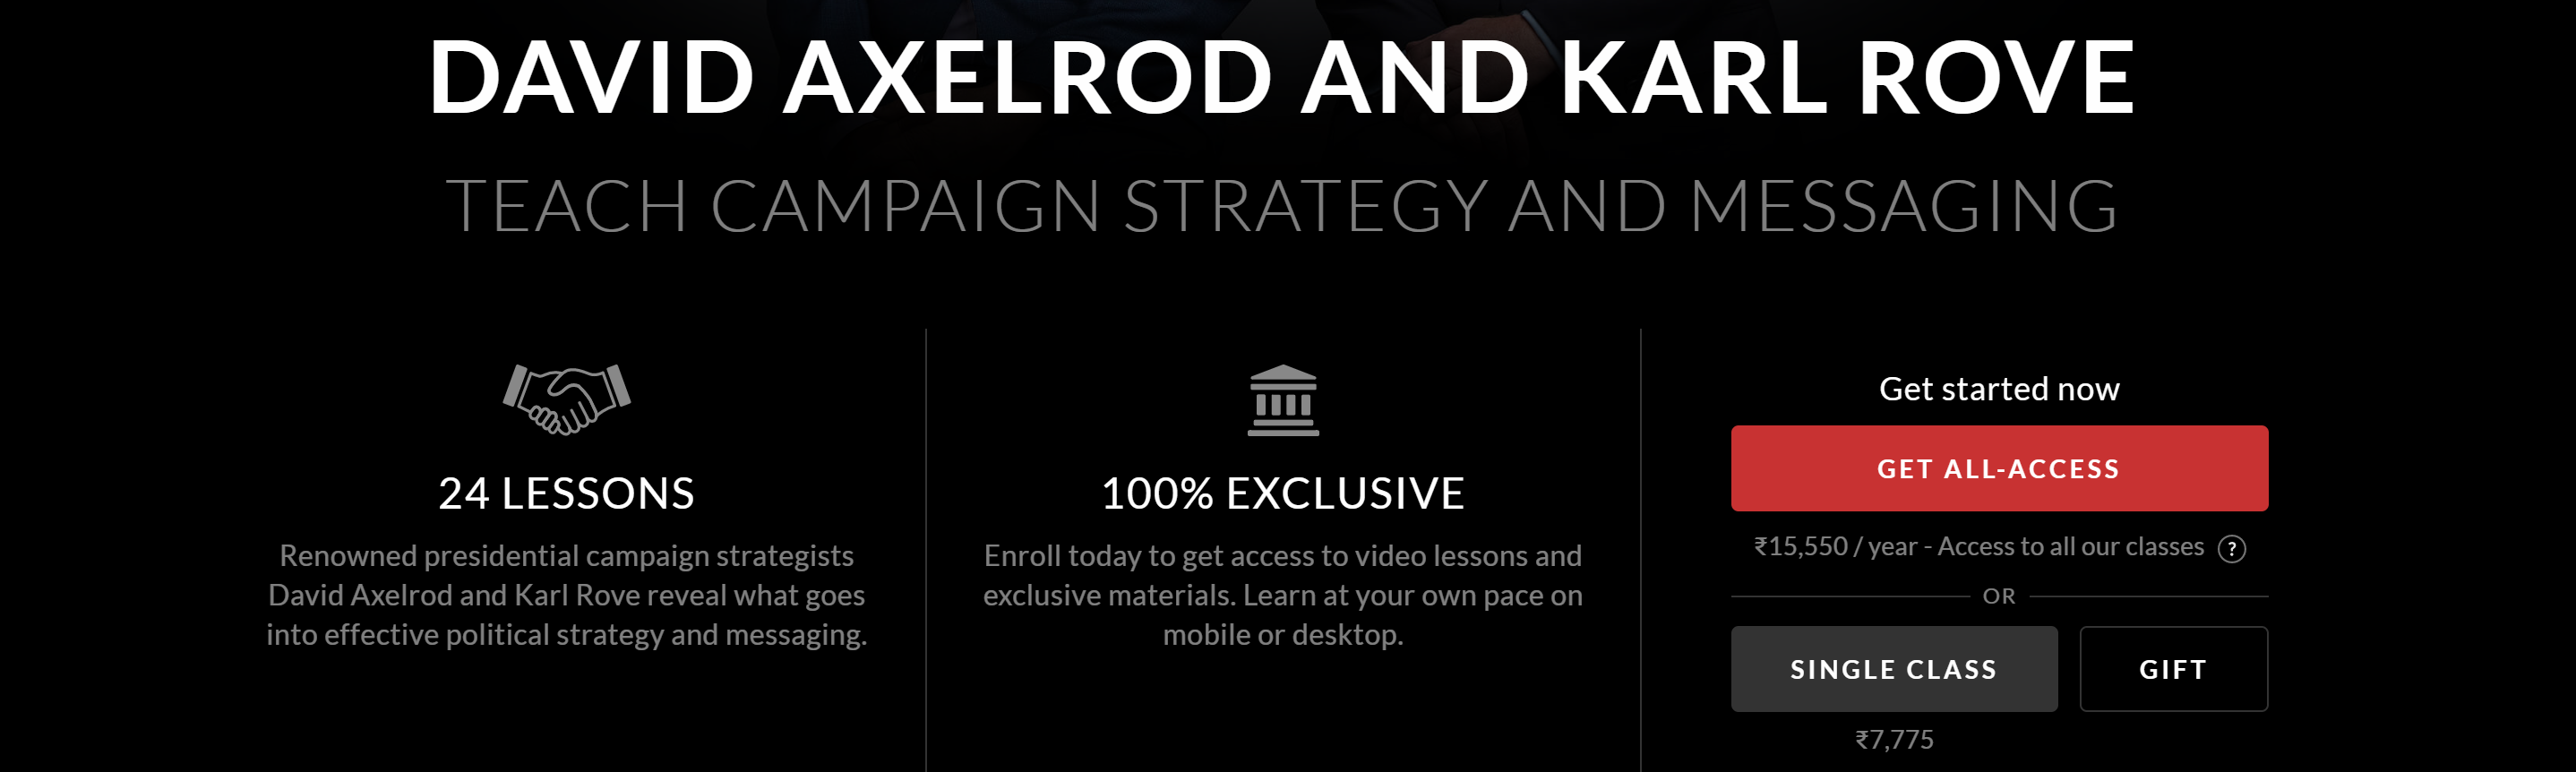 Campaign Strategy MasterClass Pricing-